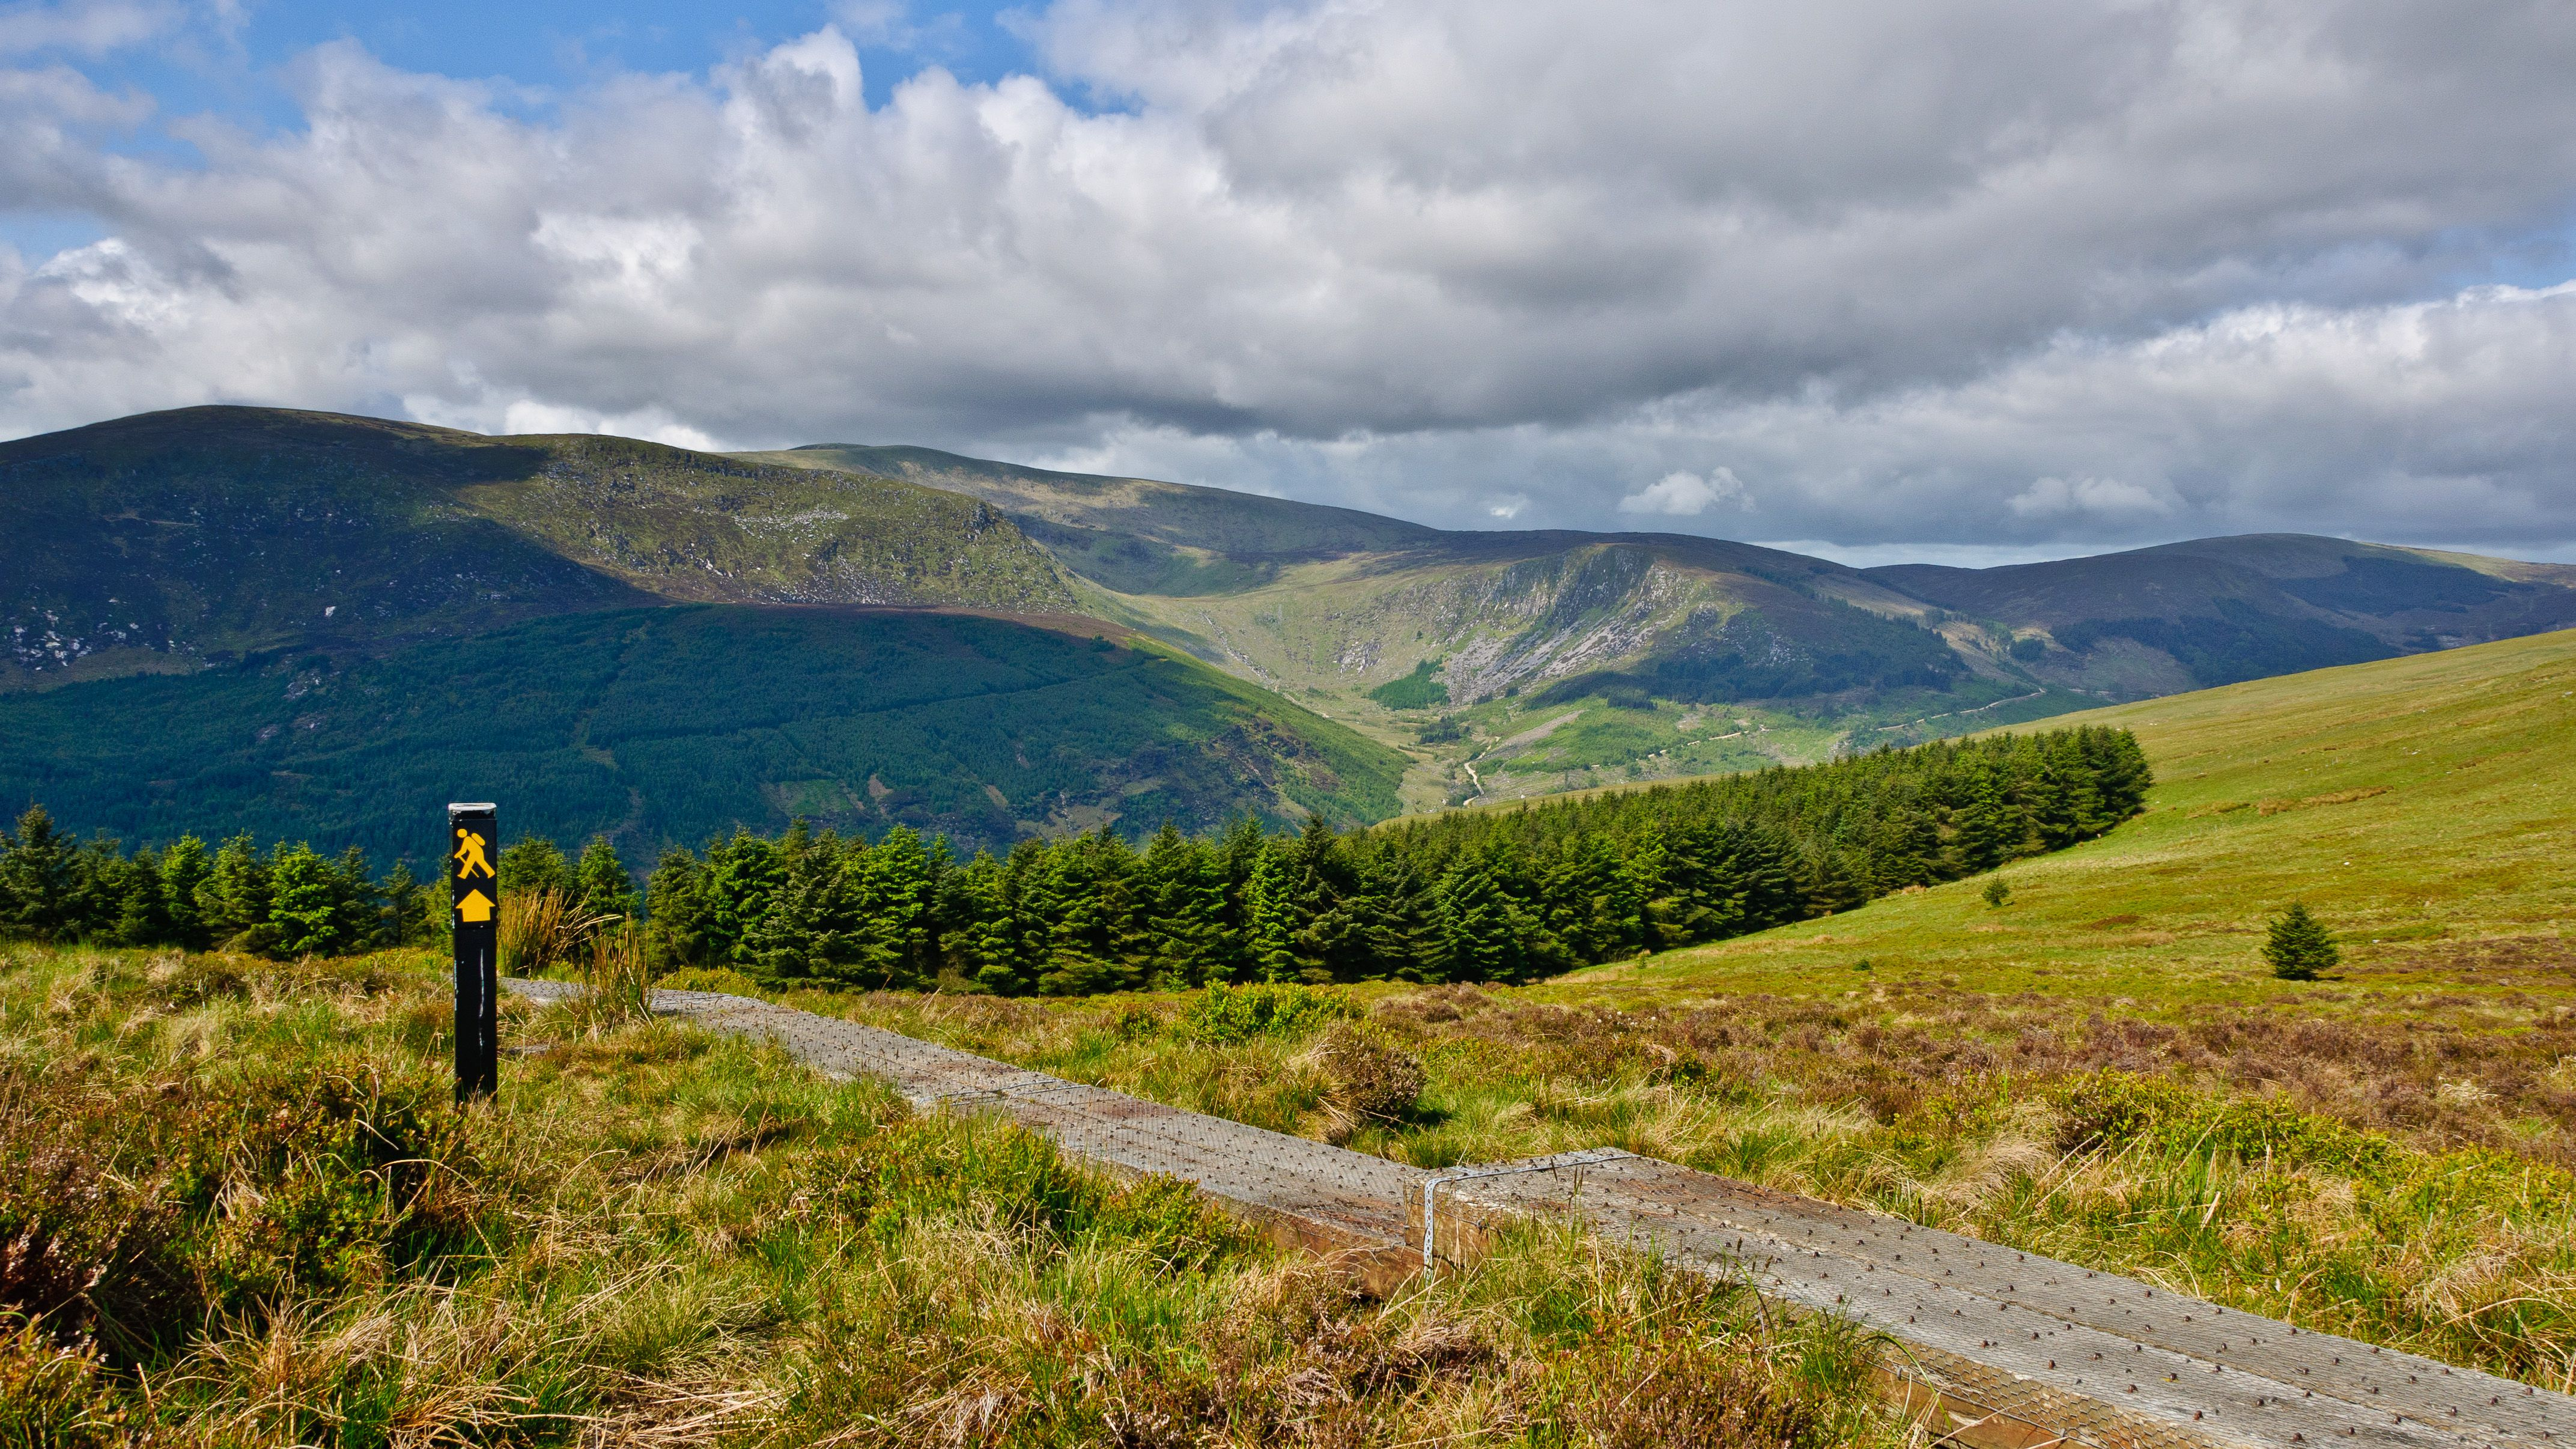 Green hills and a rocky stream on Lugnaquilla in Wicklow ireland